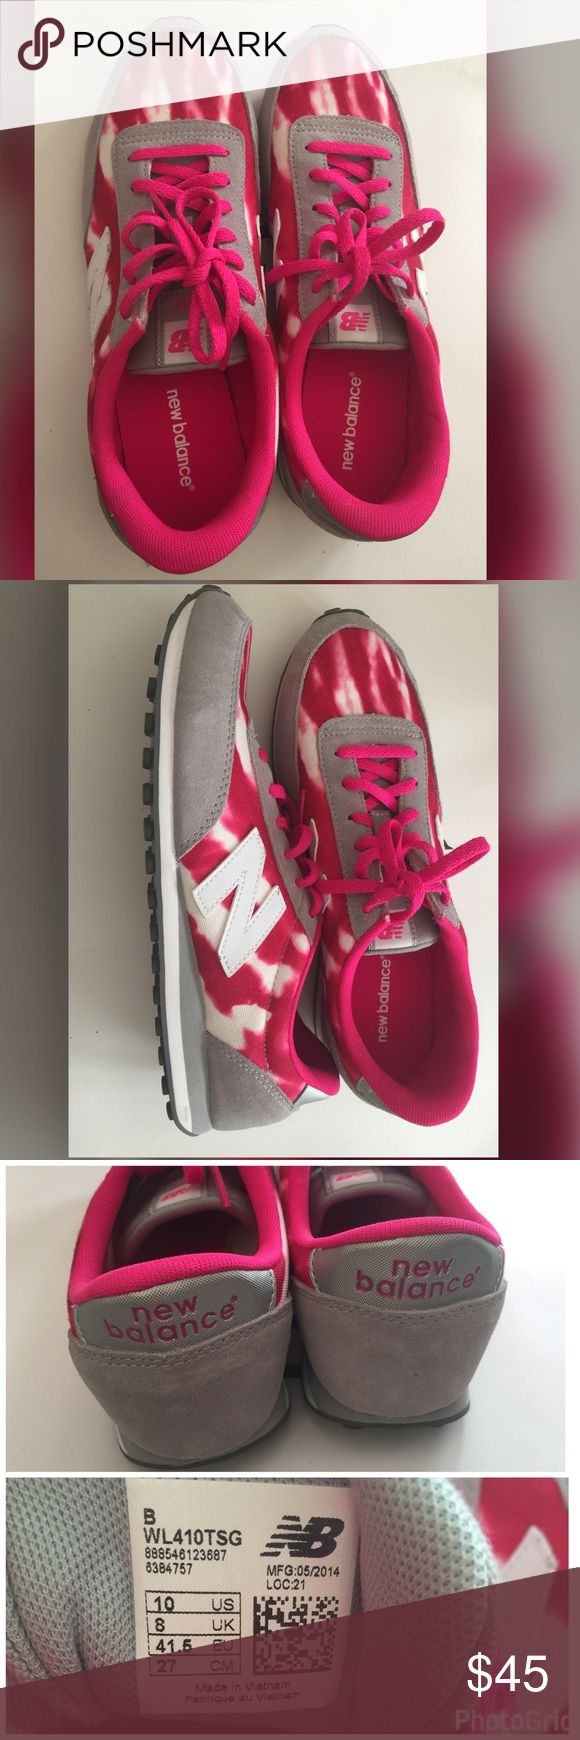 New!New balance women WL410 size 10us New!New balance women WL410 size 10us Come with new balance original box (not it's own box) Very good for walking or running. I'm size 10us but it a bit tight for me. This will fit better for 9.5us.  Any question feel free to ask me. New Balance Shoes Sneakers